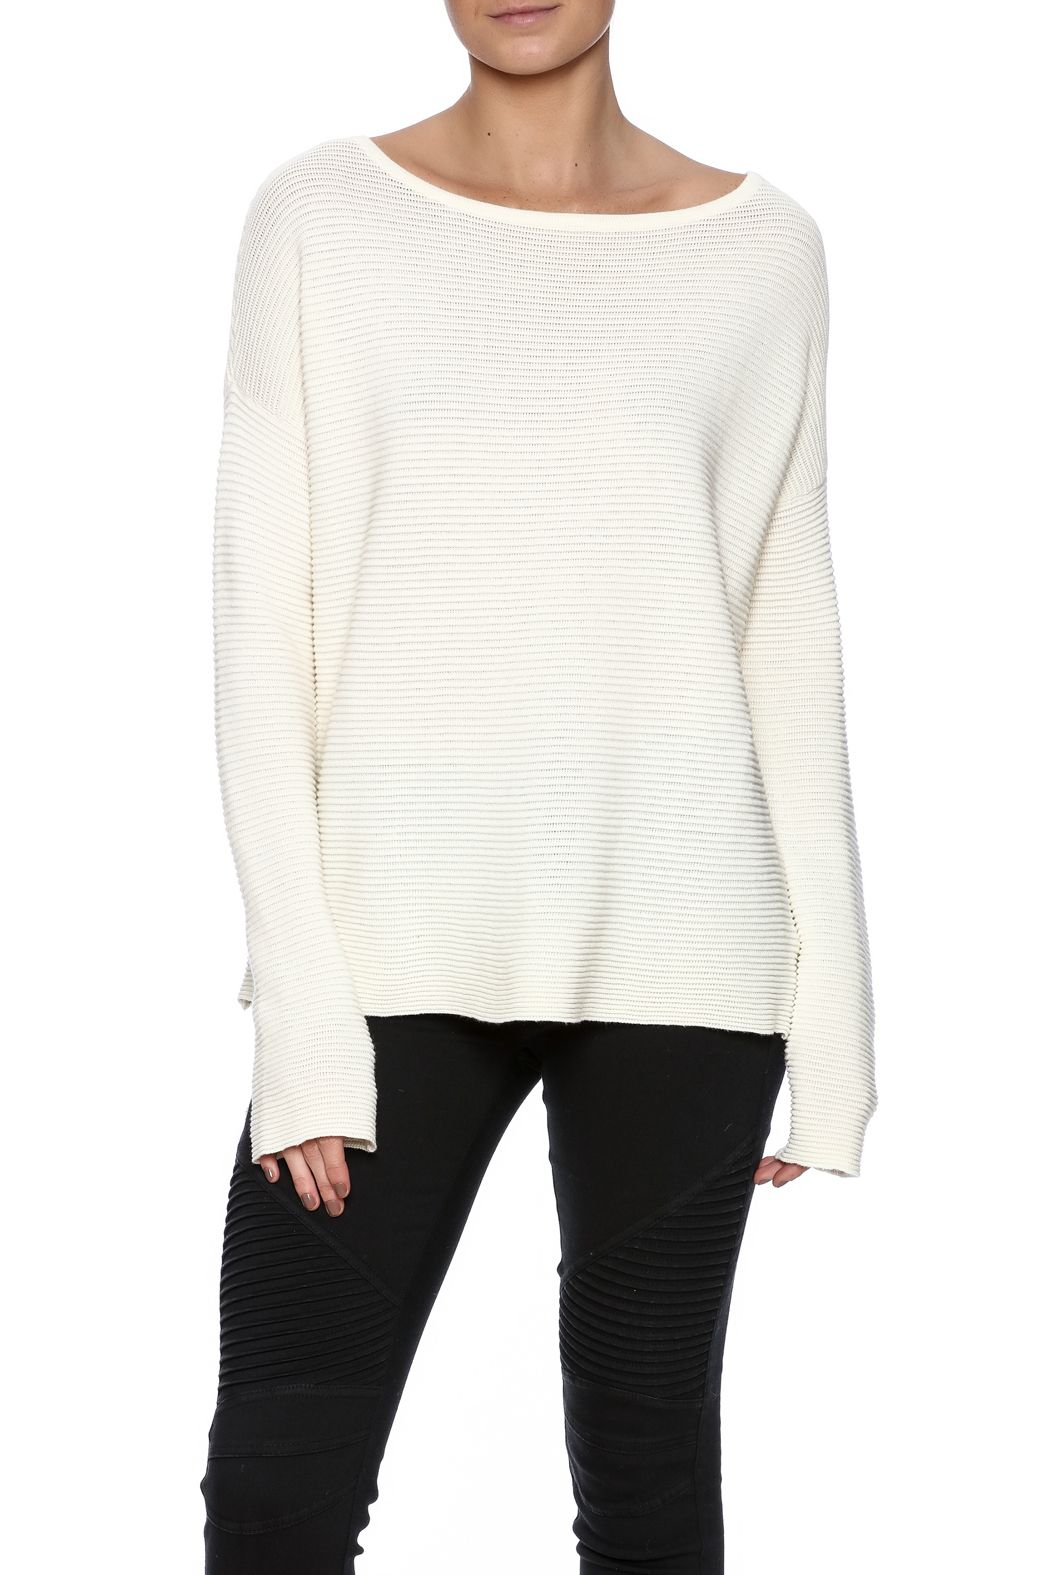 Oatmeal ribbed long sleeve sweater with a boat neckline and dropped shoulders.   Felton Sweater by BB Dakota. Clothing - Sweaters - Crew & Scoop Neck New Jersey